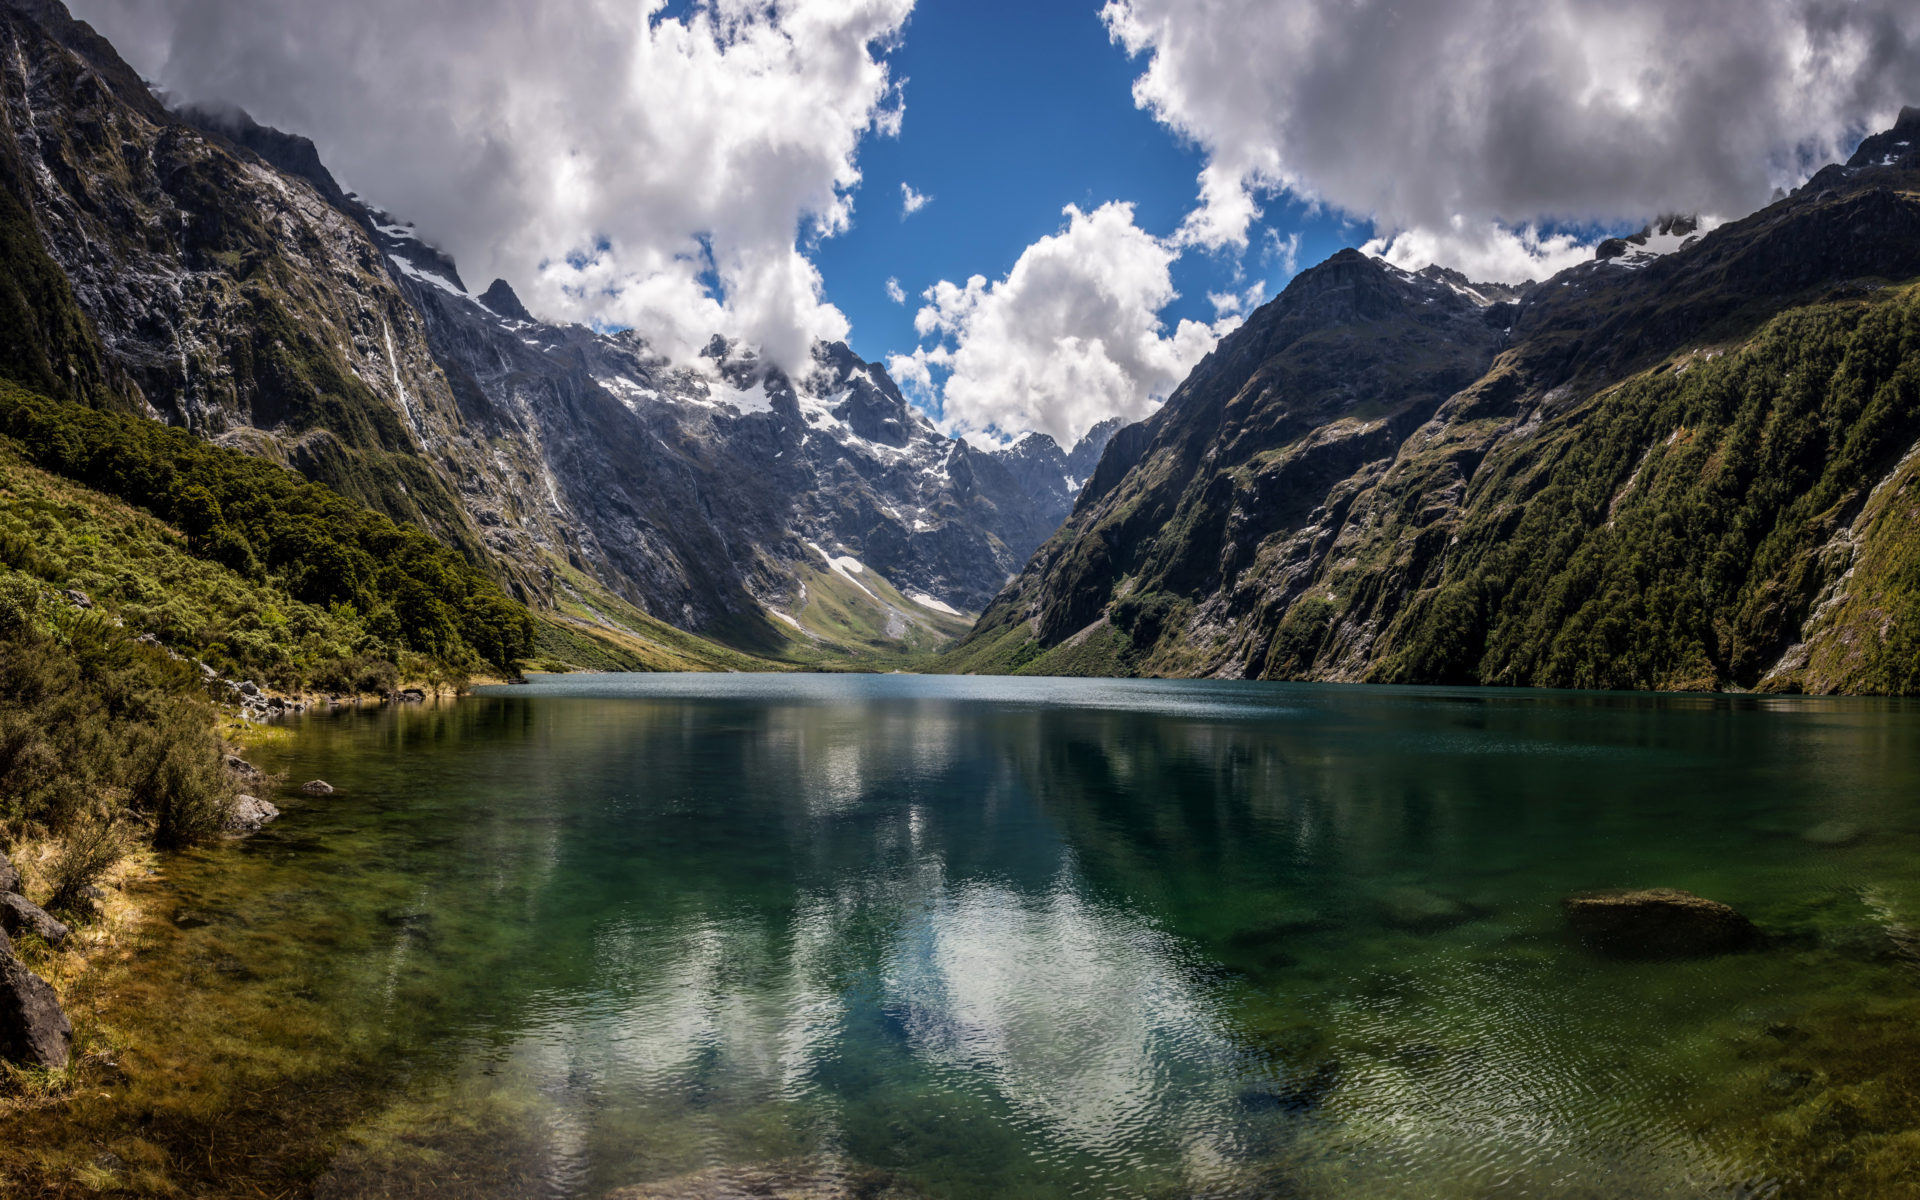 Fall Wallpapers For Tablet Natural Beauty Mountain Lake Marian New Zealand Hd